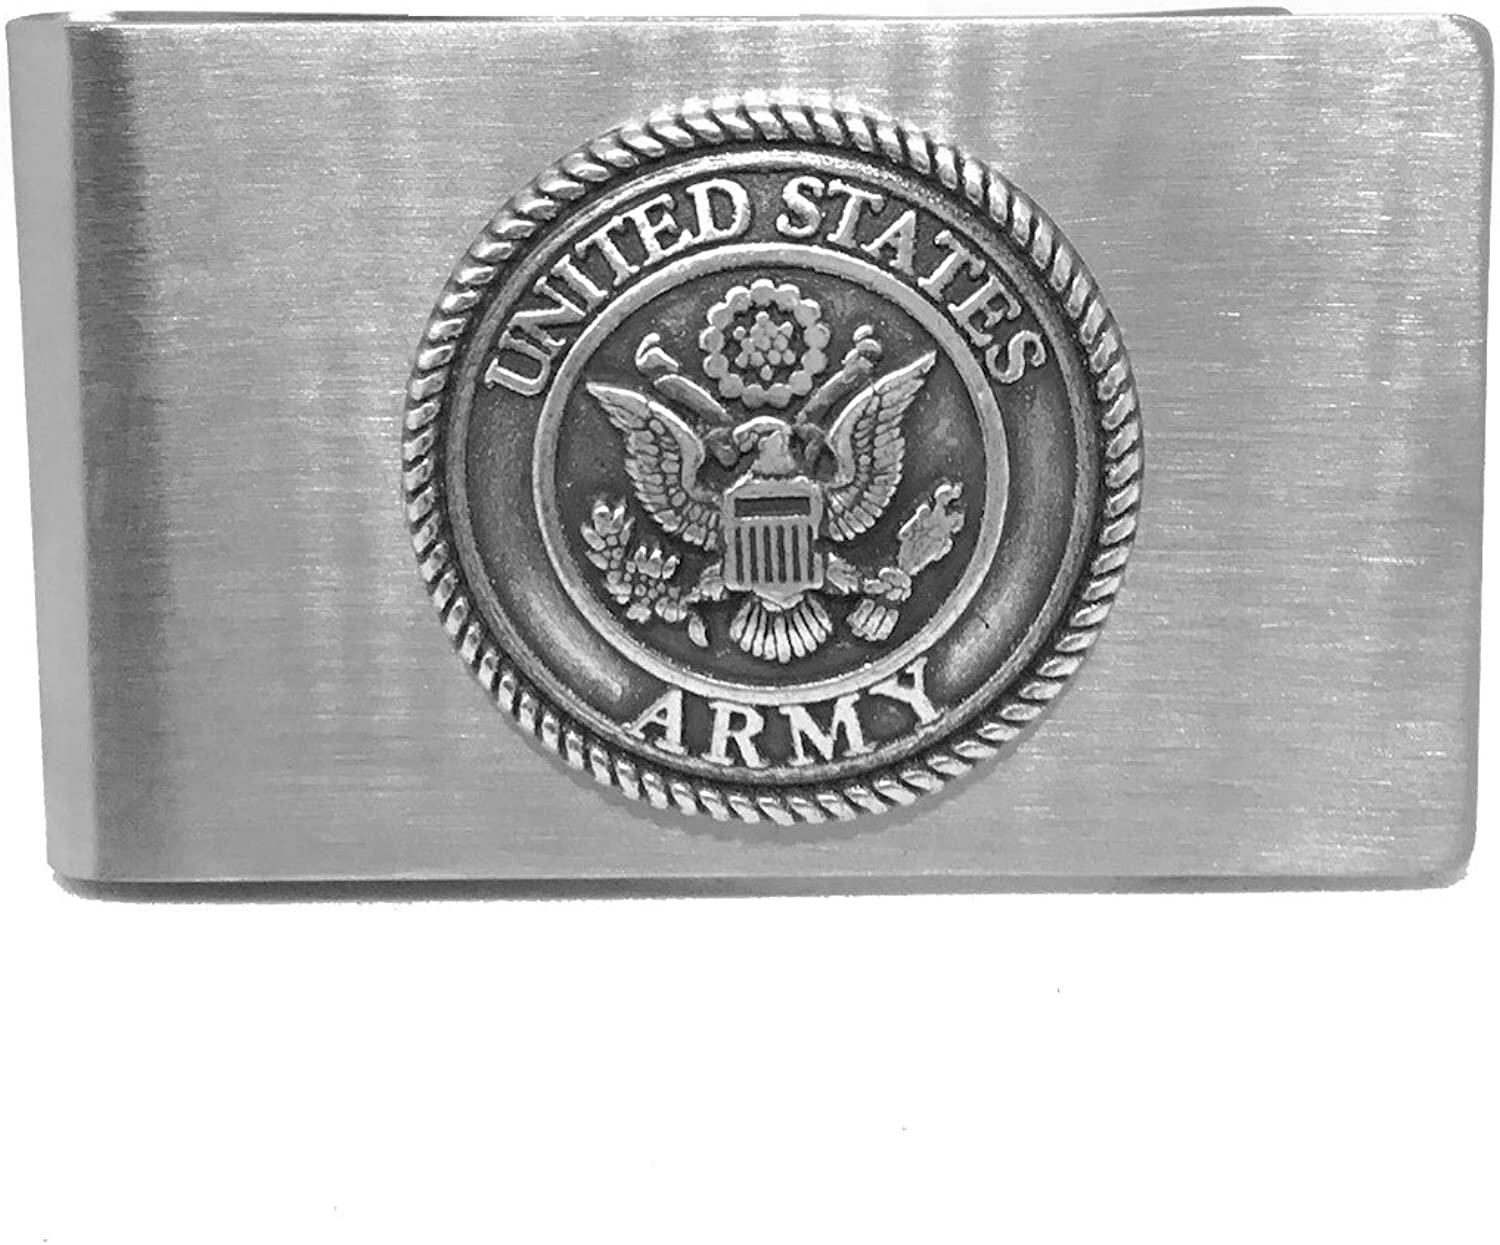 Cigar Cutters by Jim Money Clip Custom Designed French-Fold Money Clip in Brushed Stainless Steel